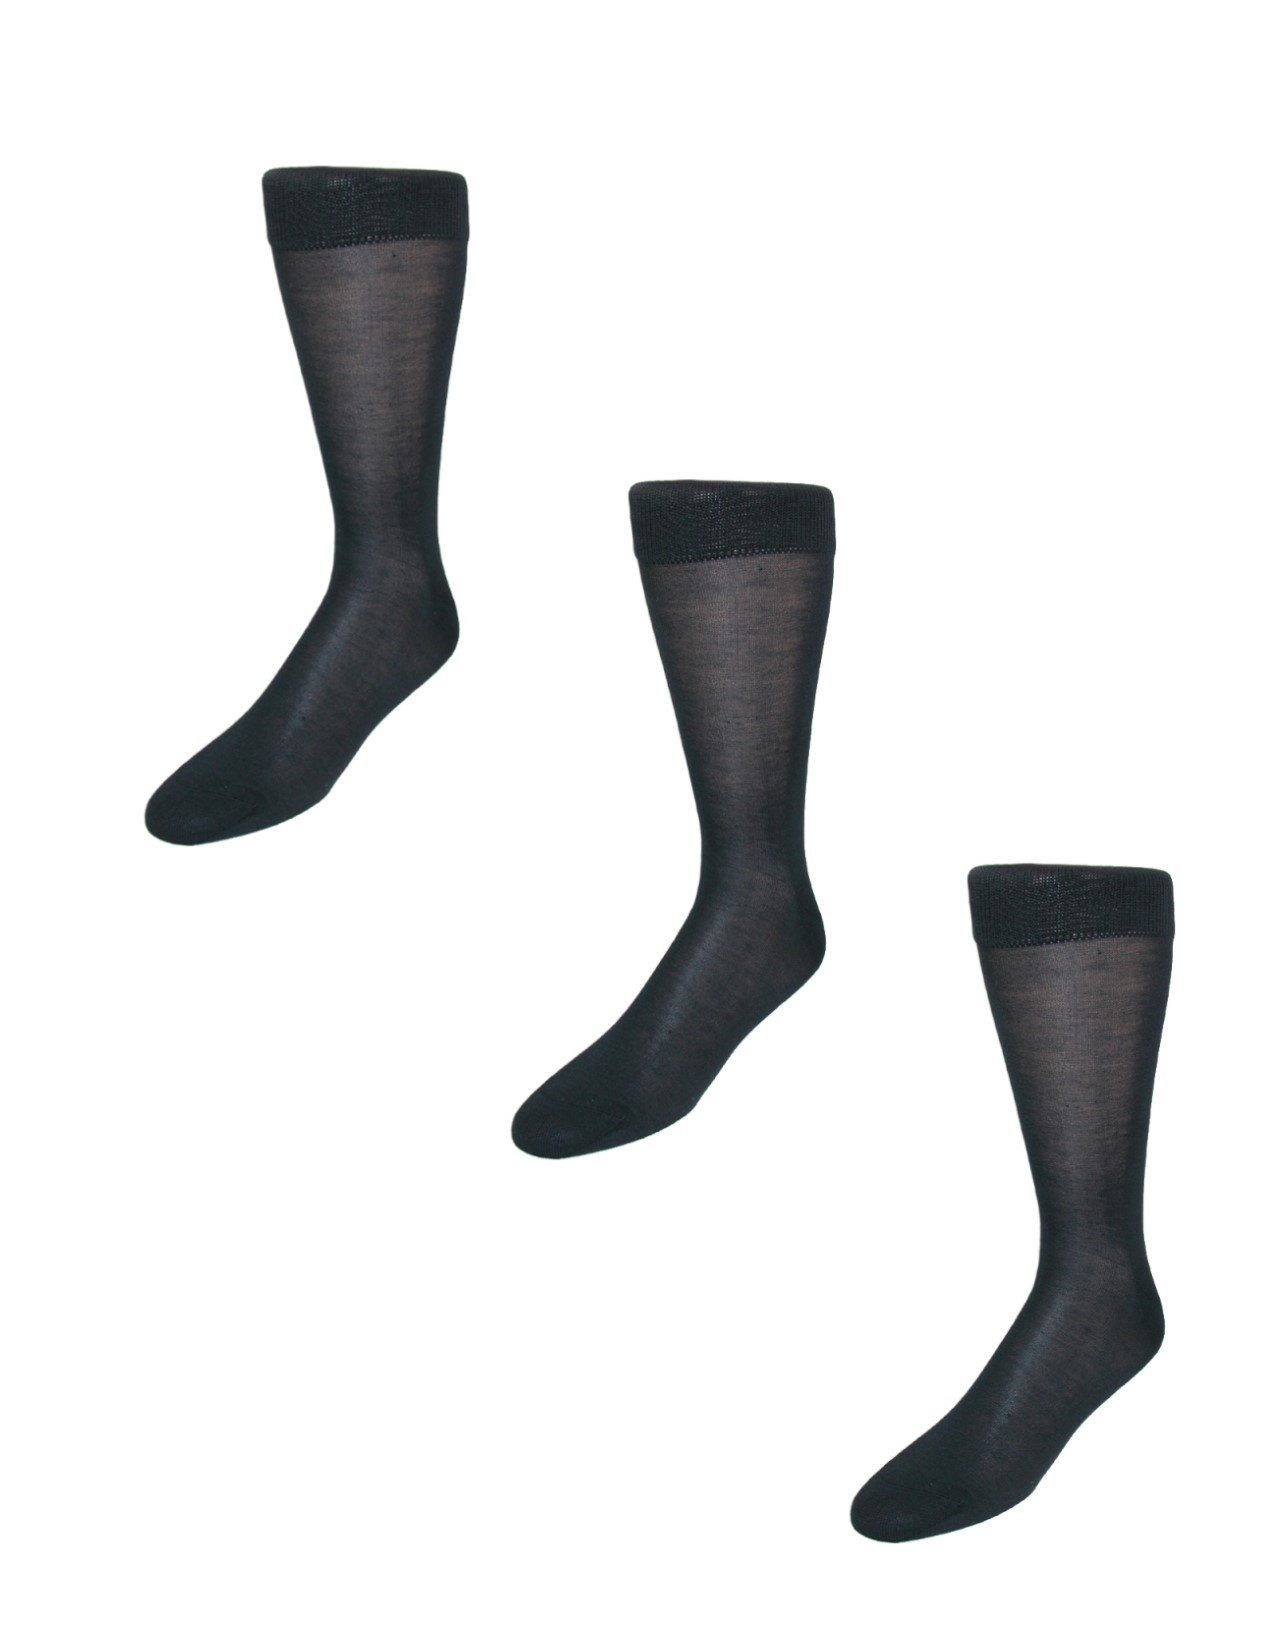 f6b61b4adb9a This Windsor Collection sock's silk blend fabric is supremely soft for  comfort. The sock is ribbed at the top to keep it in place and to maintain  a smooth ...